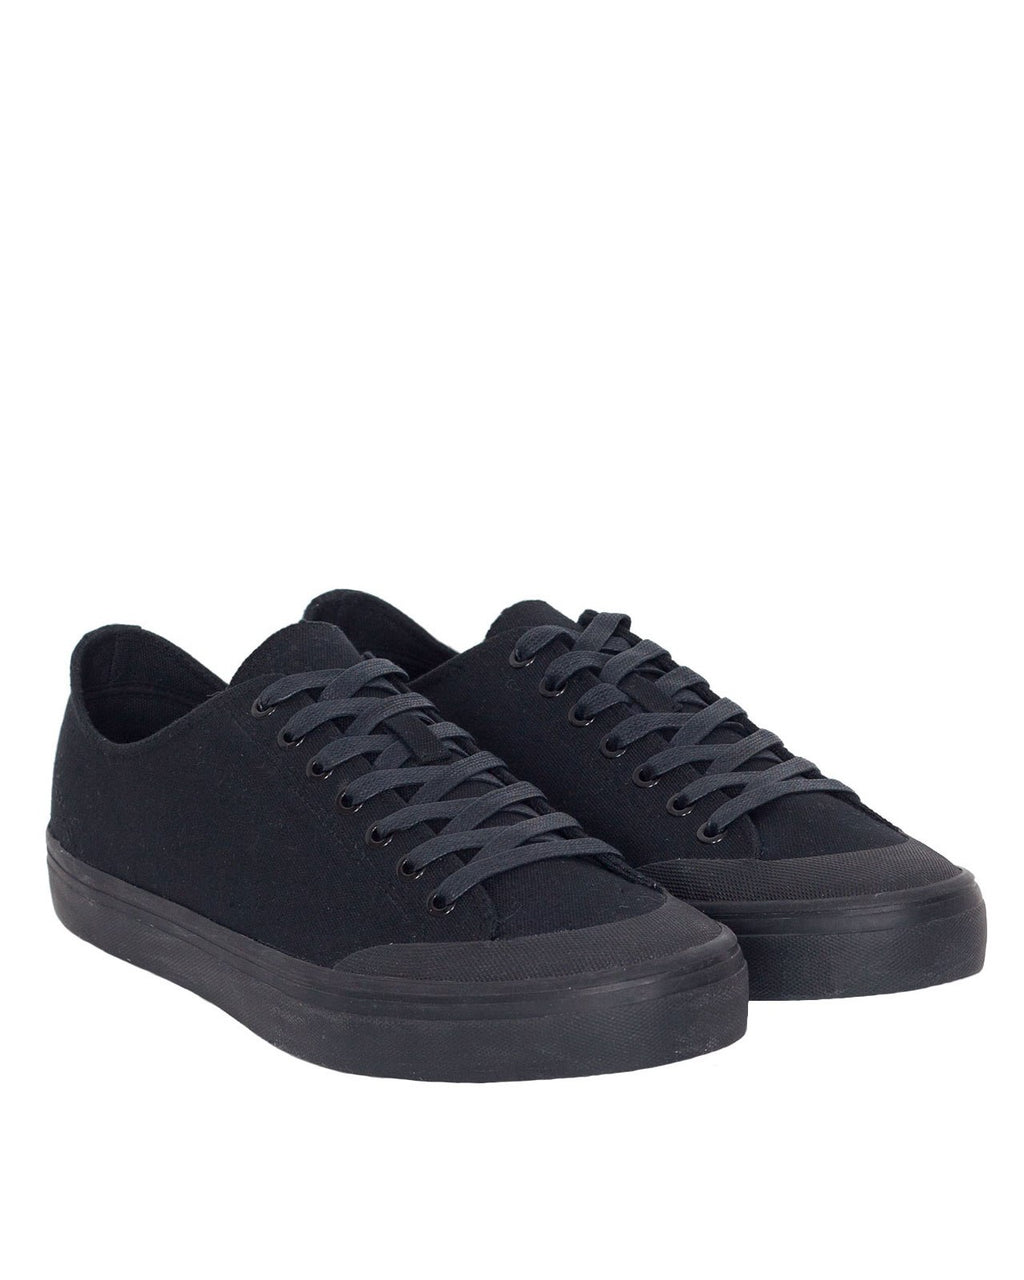 Erik Schedin Canvas Sneaker, Black